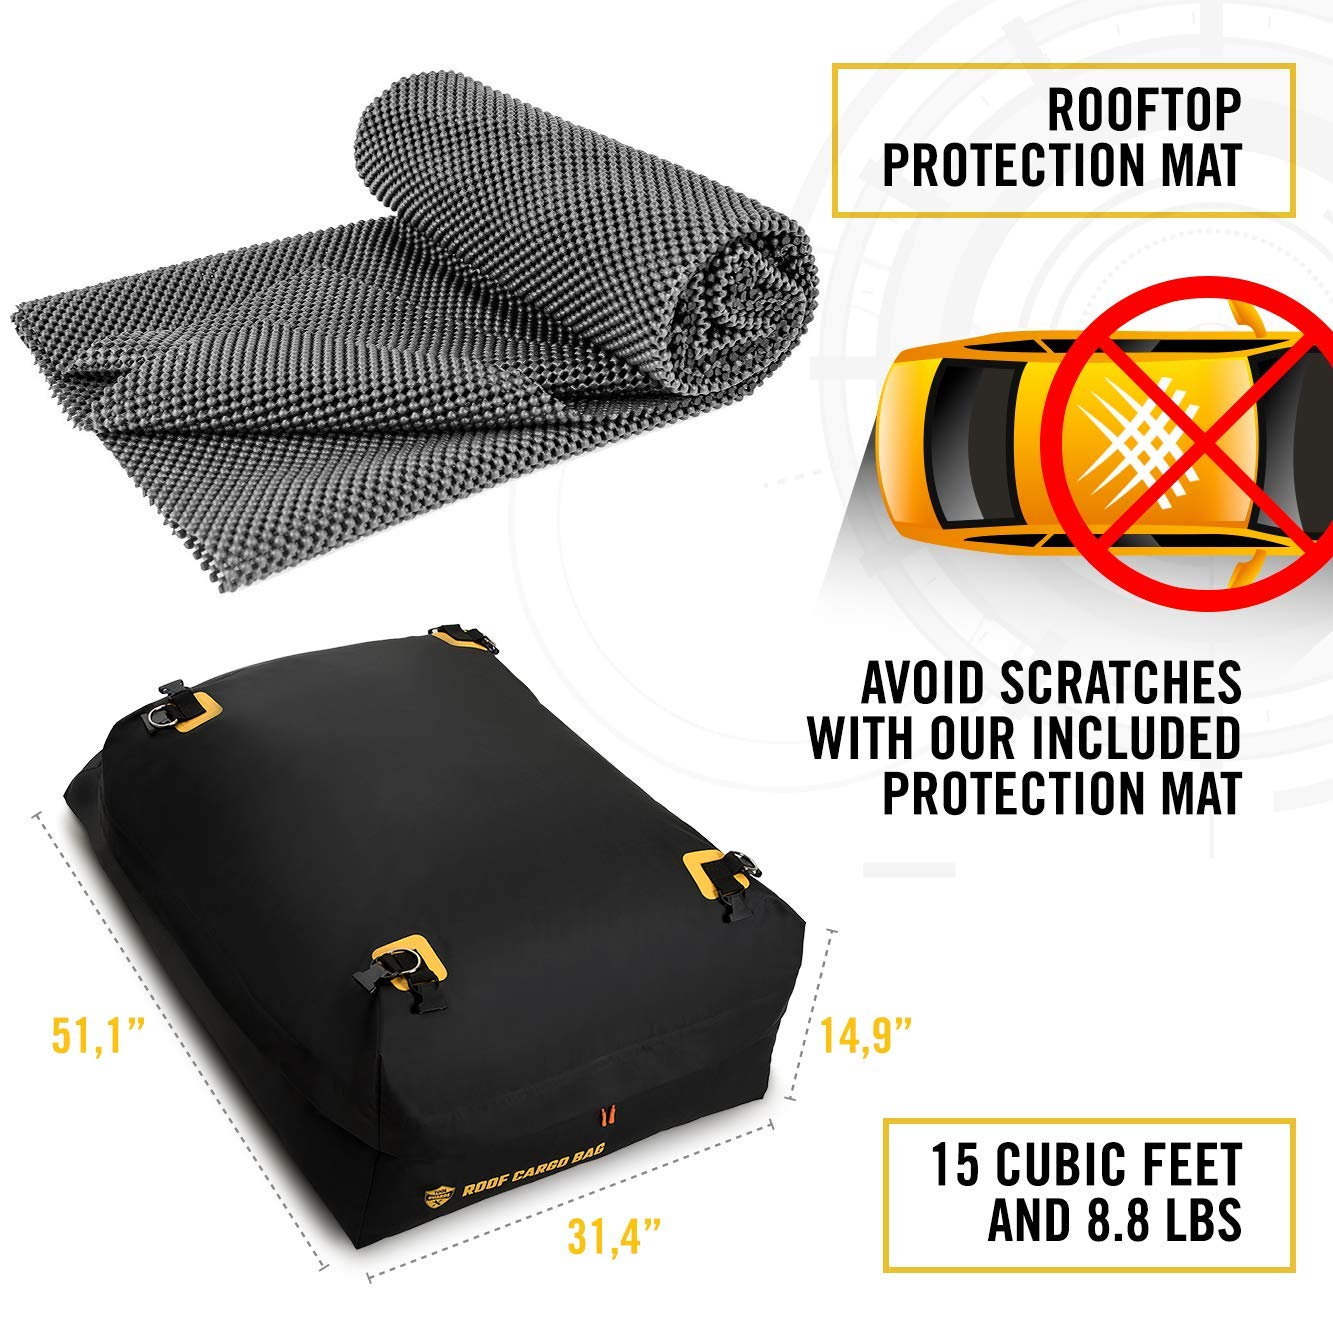 Car Top Carrier Roof Bag + Protective Mat - 100% Waterproof & Coated Zippers 15 Cubic ft - for Cars with or Without Racks by ToolGuards (Image #8)